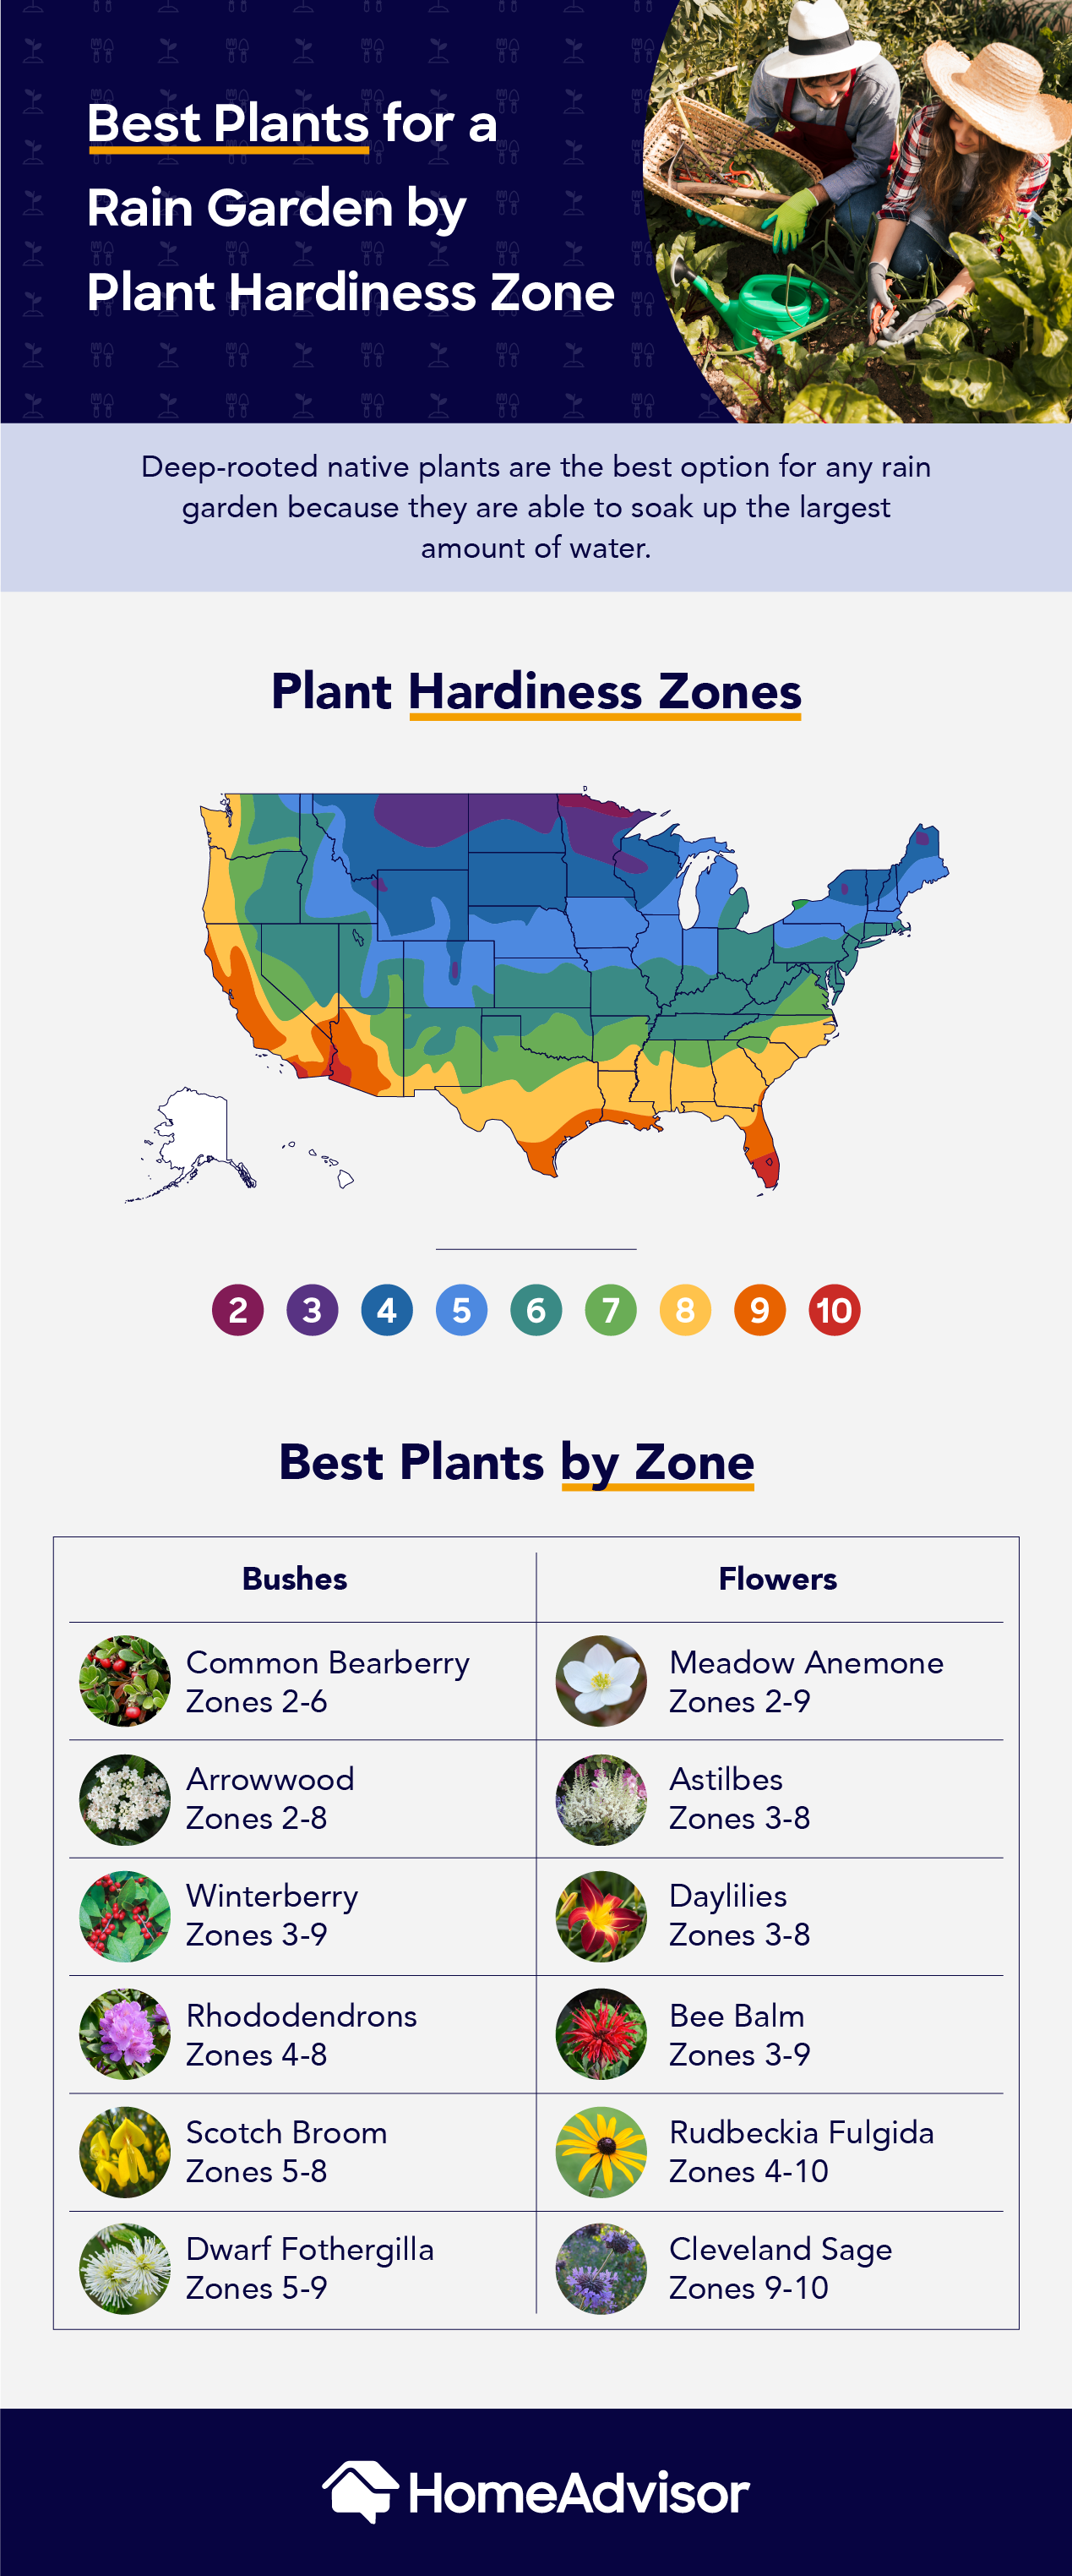 best plants for a rain garden by plant hardiness zone